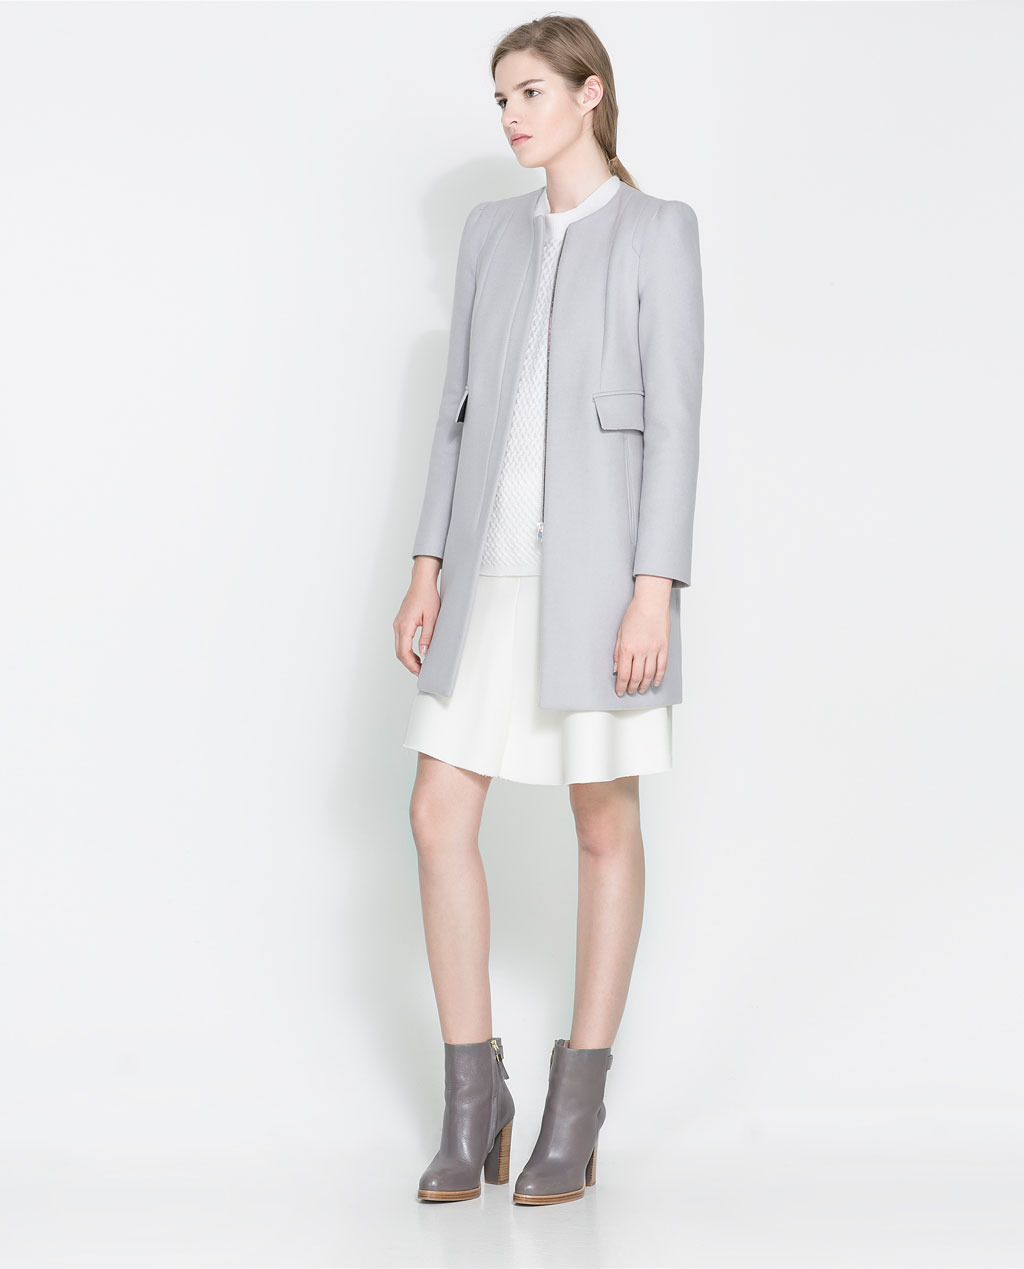 Coat With Gathering On The Shoulder - pattern: plain; collar: round collar/collarless; style: single breasted; length: mid thigh; predominant colour: light grey; occasions: casual, work, creative work; fit: tailored/fitted; fibres: wool - mix; shoulder detail: subtle shoulder detail; sleeve length: long sleeve; sleeve style: standard; collar break: high; pattern type: fabric; texture group: woven bulky/heavy; season: a/w 2013